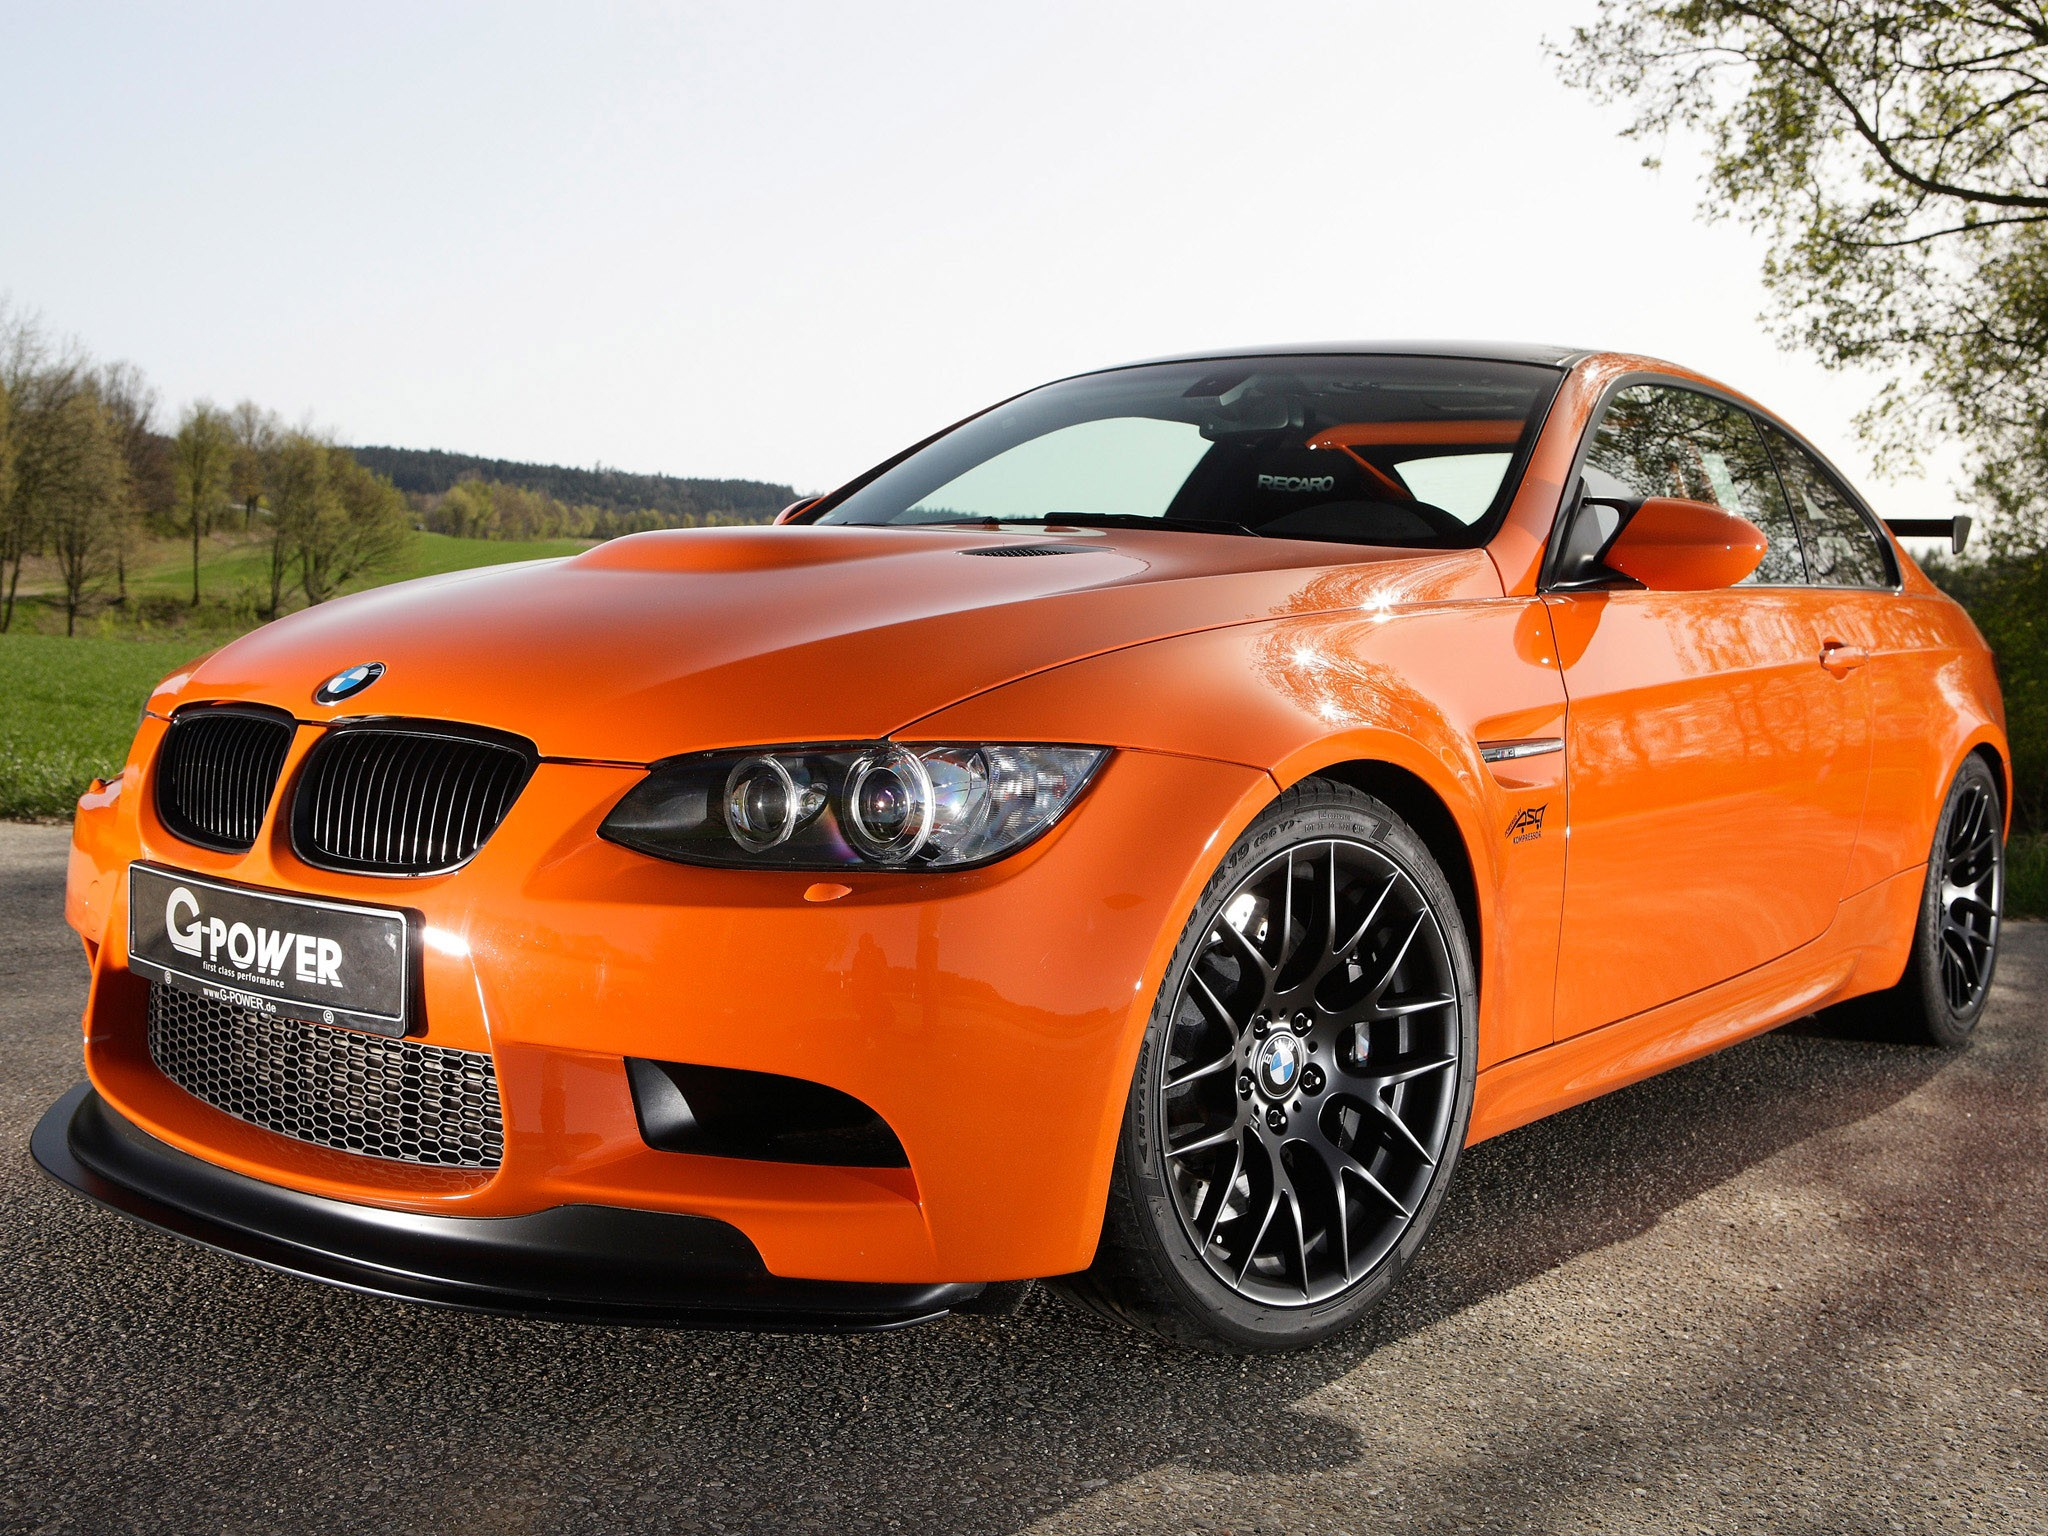 2010 G-power - Bmw M3 GTS